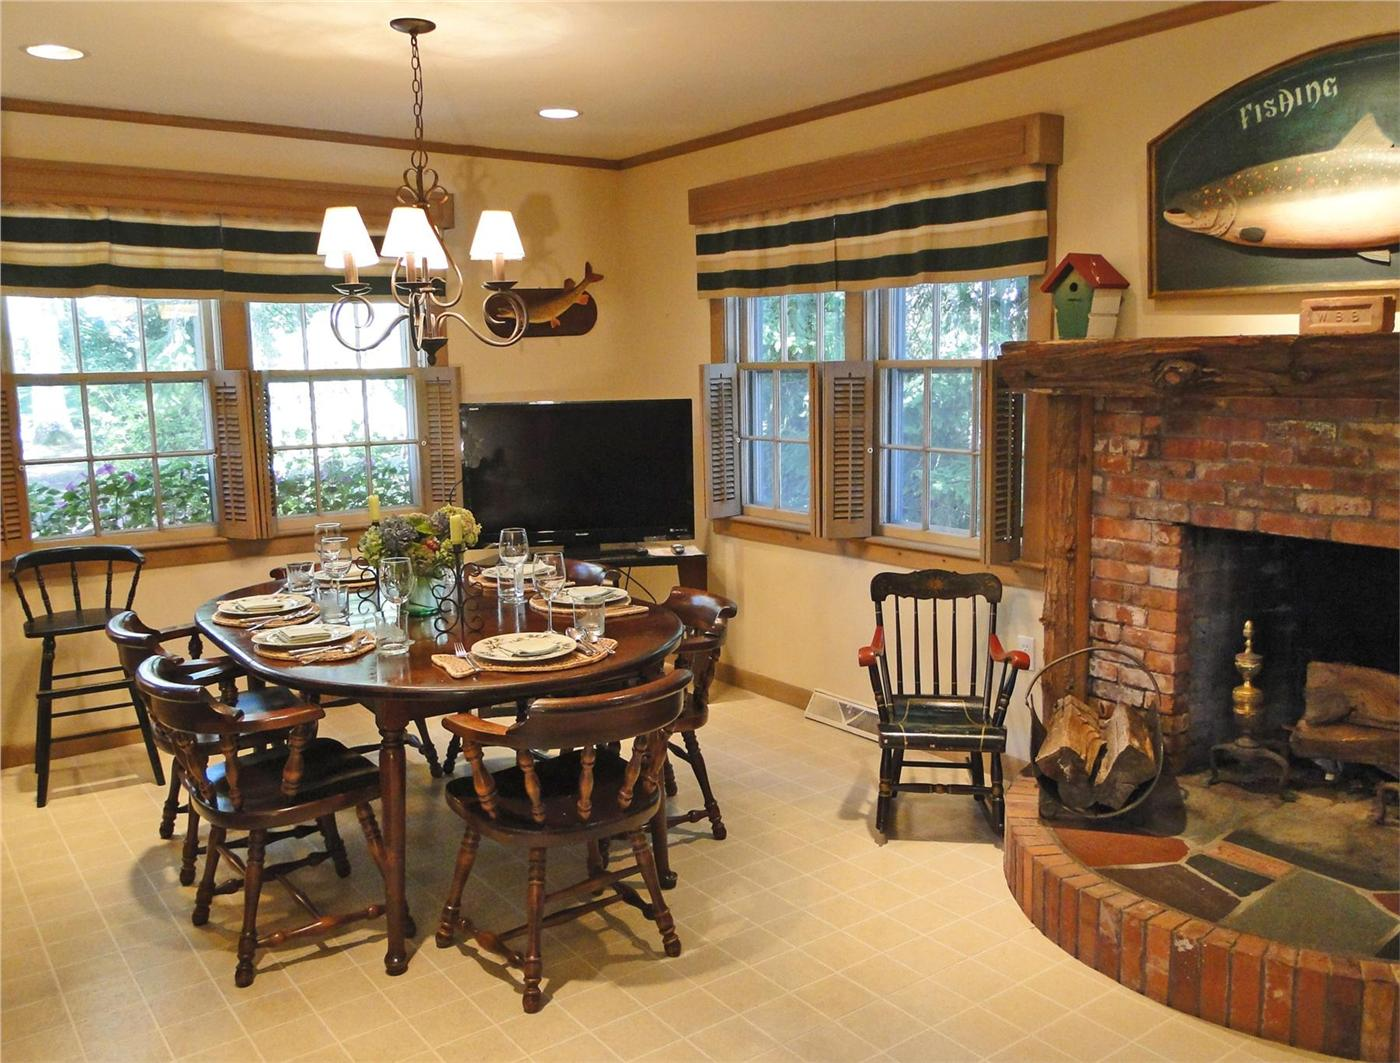 picture of living room centerville vacation rental home in centerville ma 02632 12765